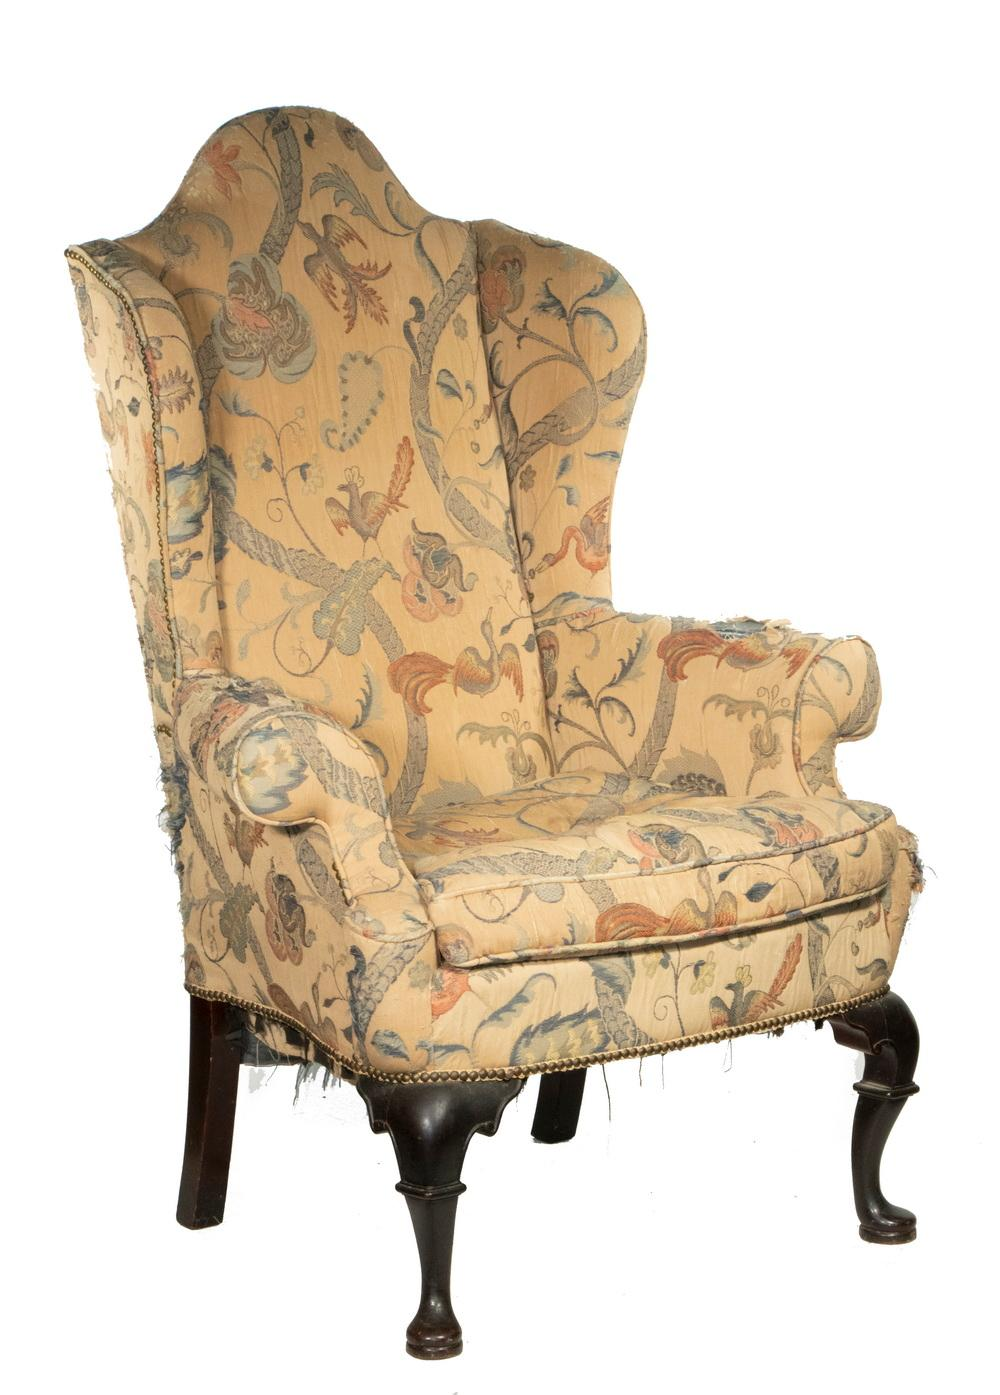 CUSTOM CARVED QUEEN ANNE WING CHAIR